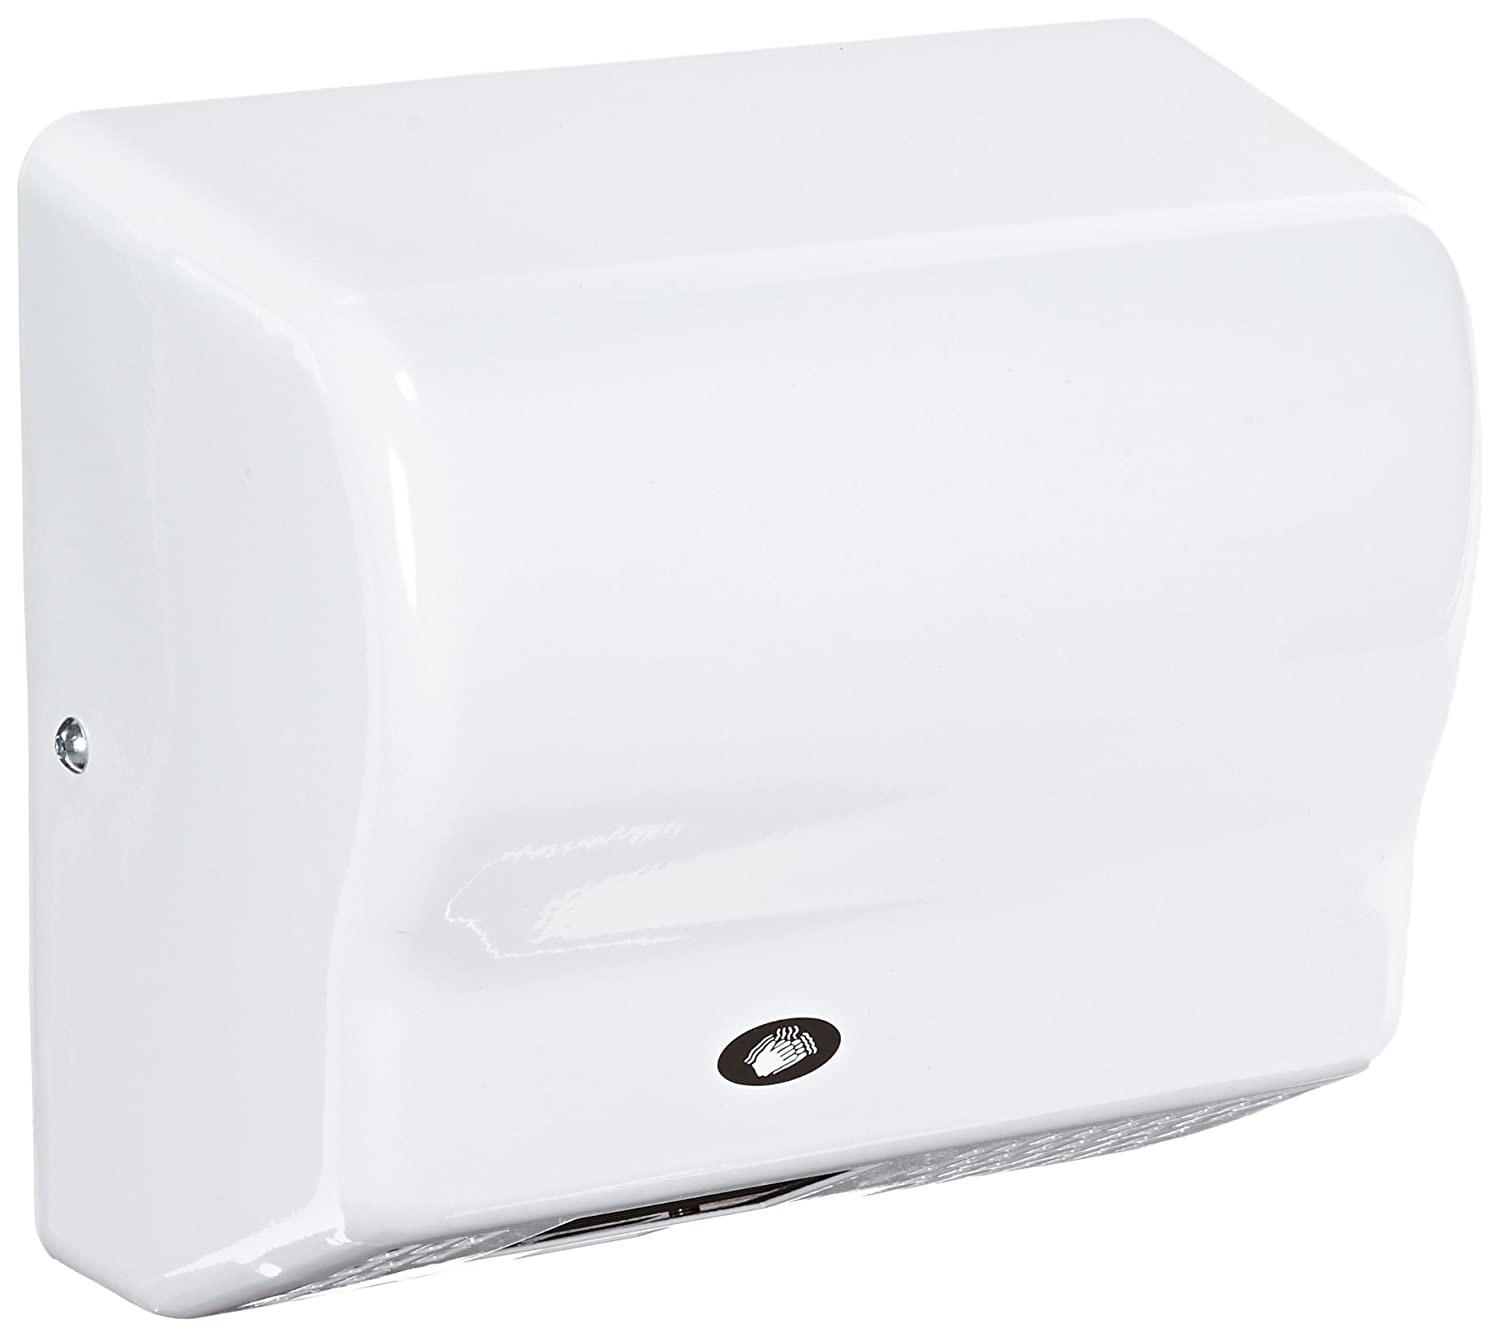 Image of American Dryer Global GX1-M Steel Cover Automatic Hand Dryer, 110-120V, 1,500W Power, 50/60Hz, White Epoxy Finish Hand Dryers